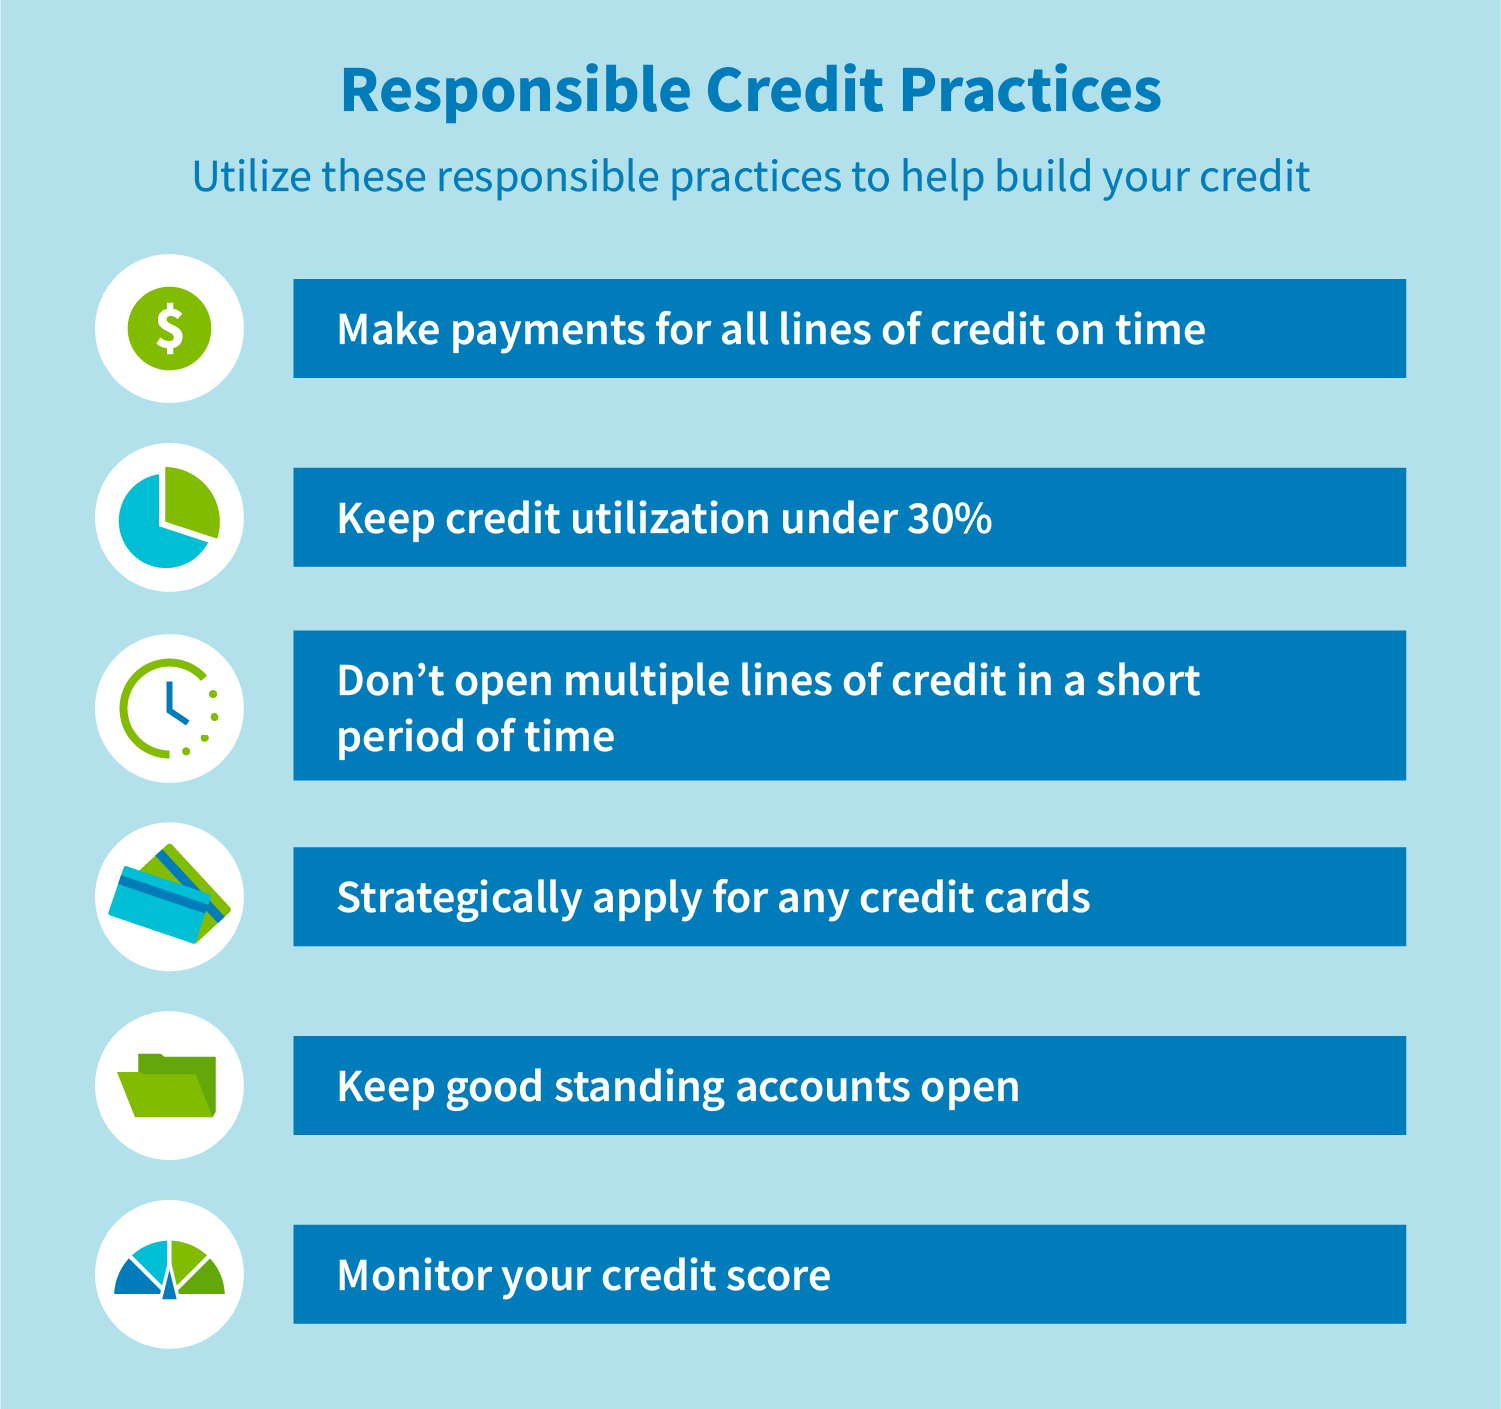 Responsible credit practices